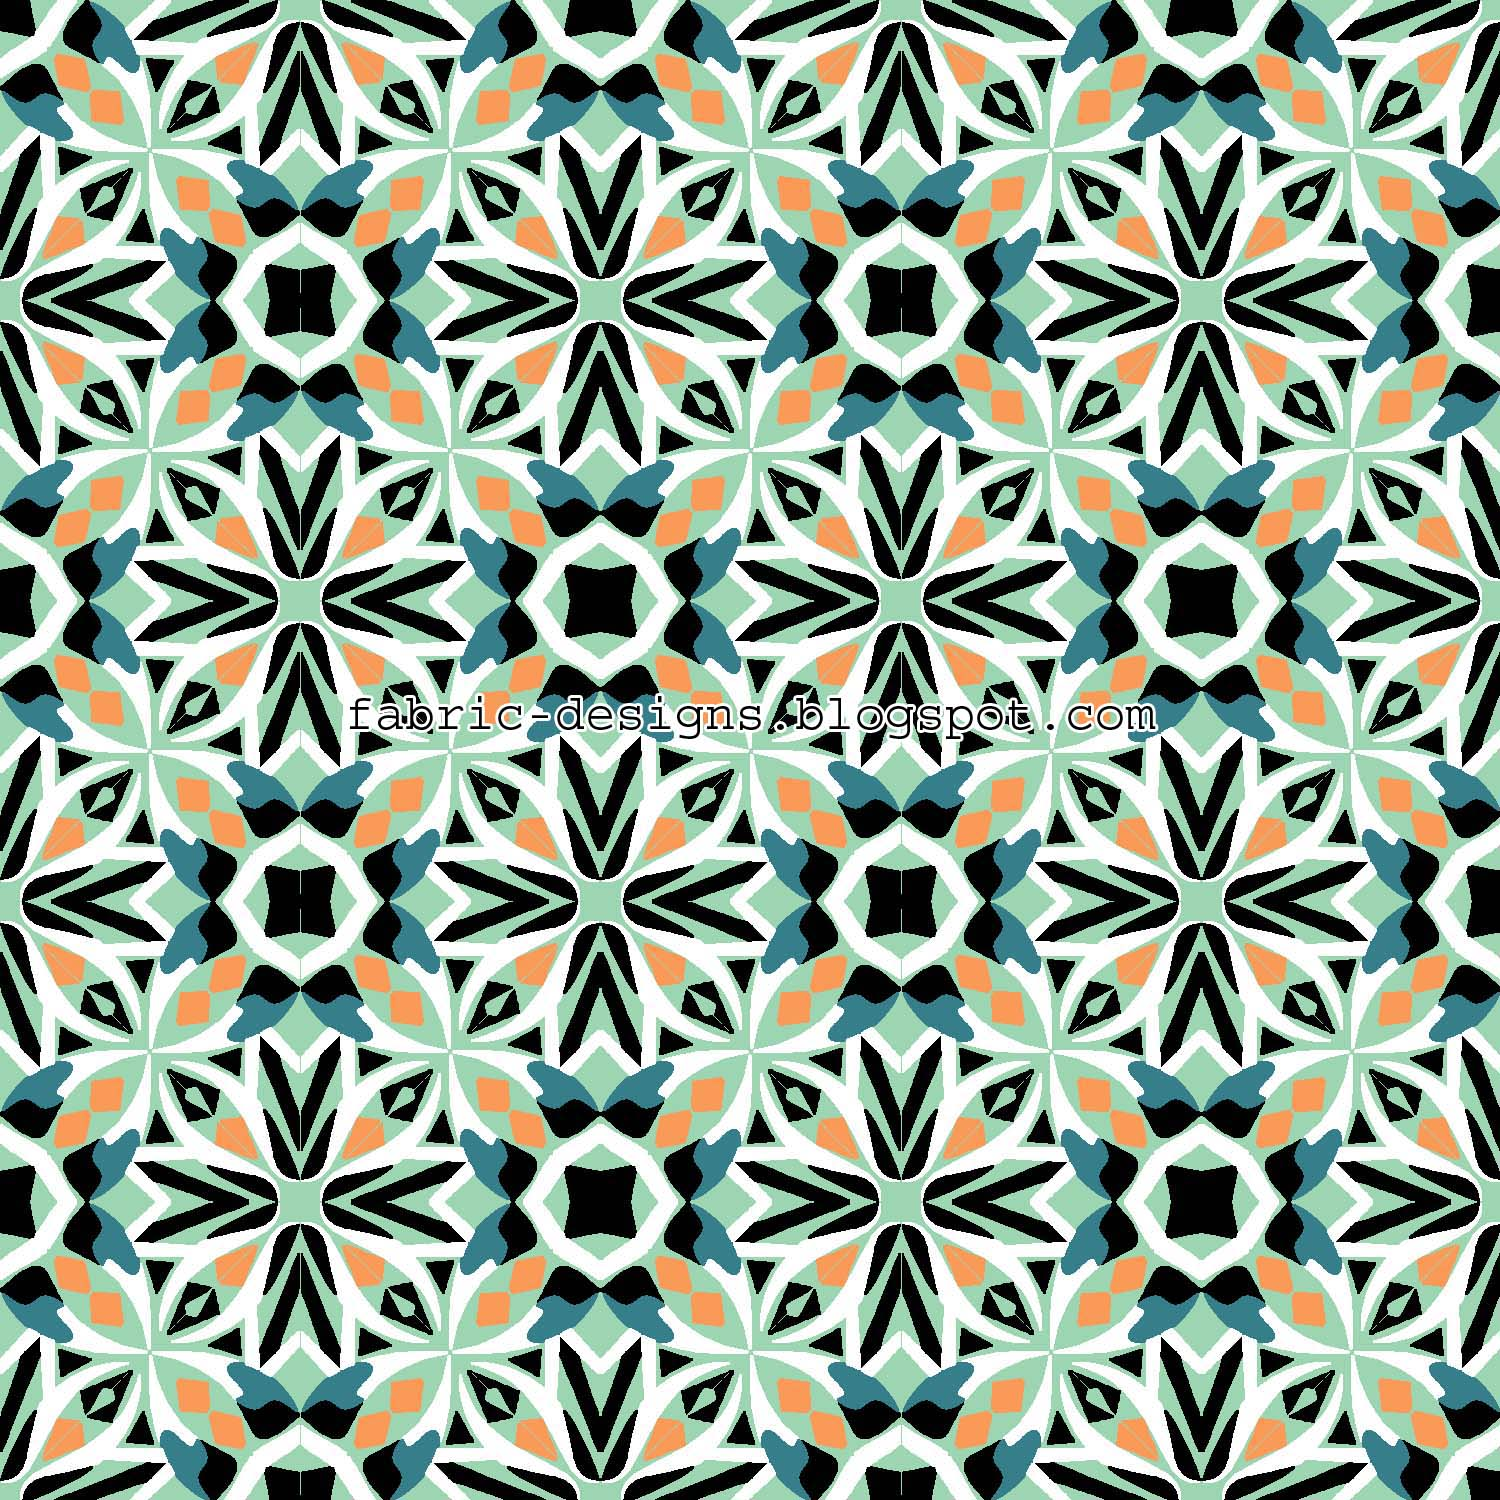 Beautiful Fabric Patterns And Designs Fabric Textile: geometric patterns